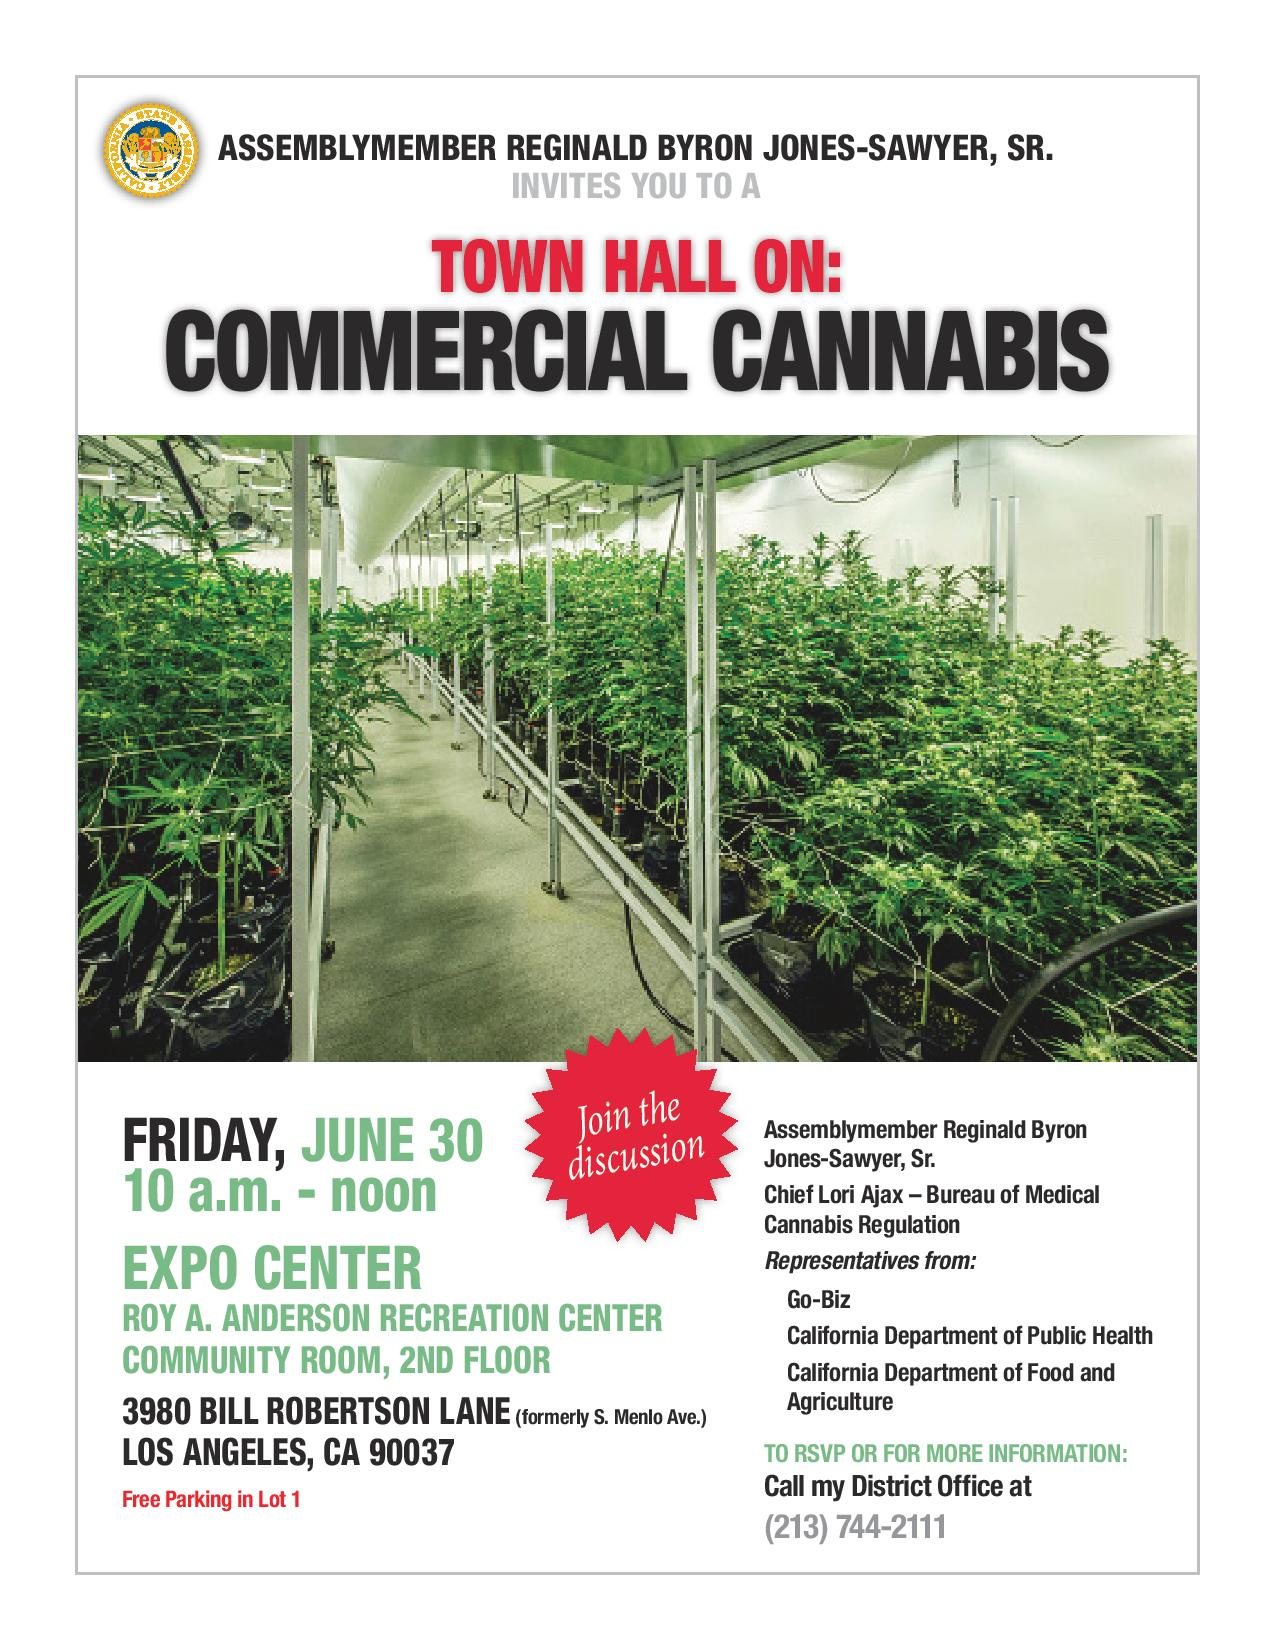 Jones-Sawyer-Cannabis_Town_Hall.jpg